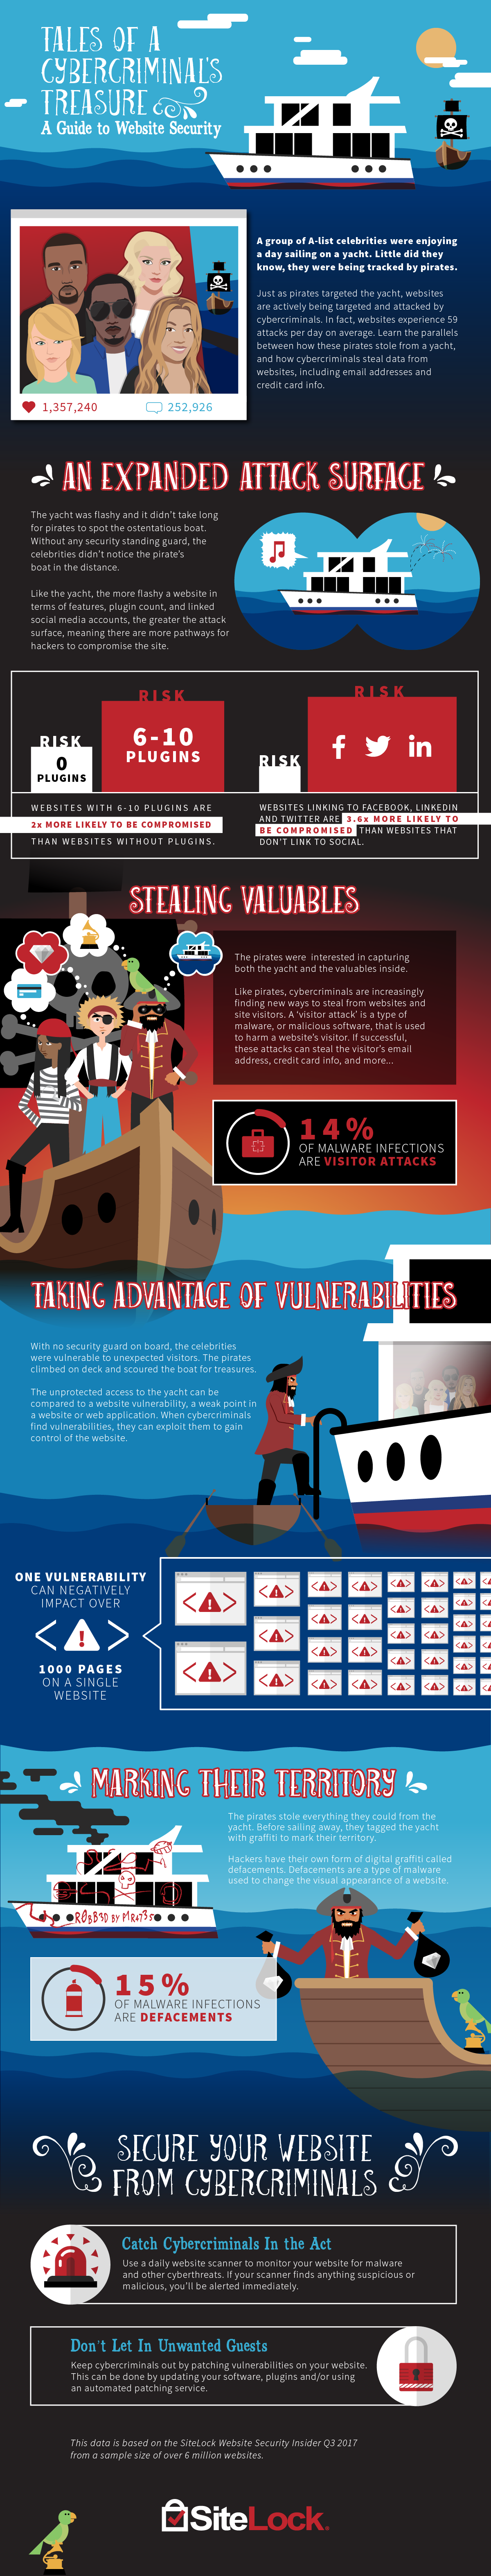 Cybercriminal Infographic